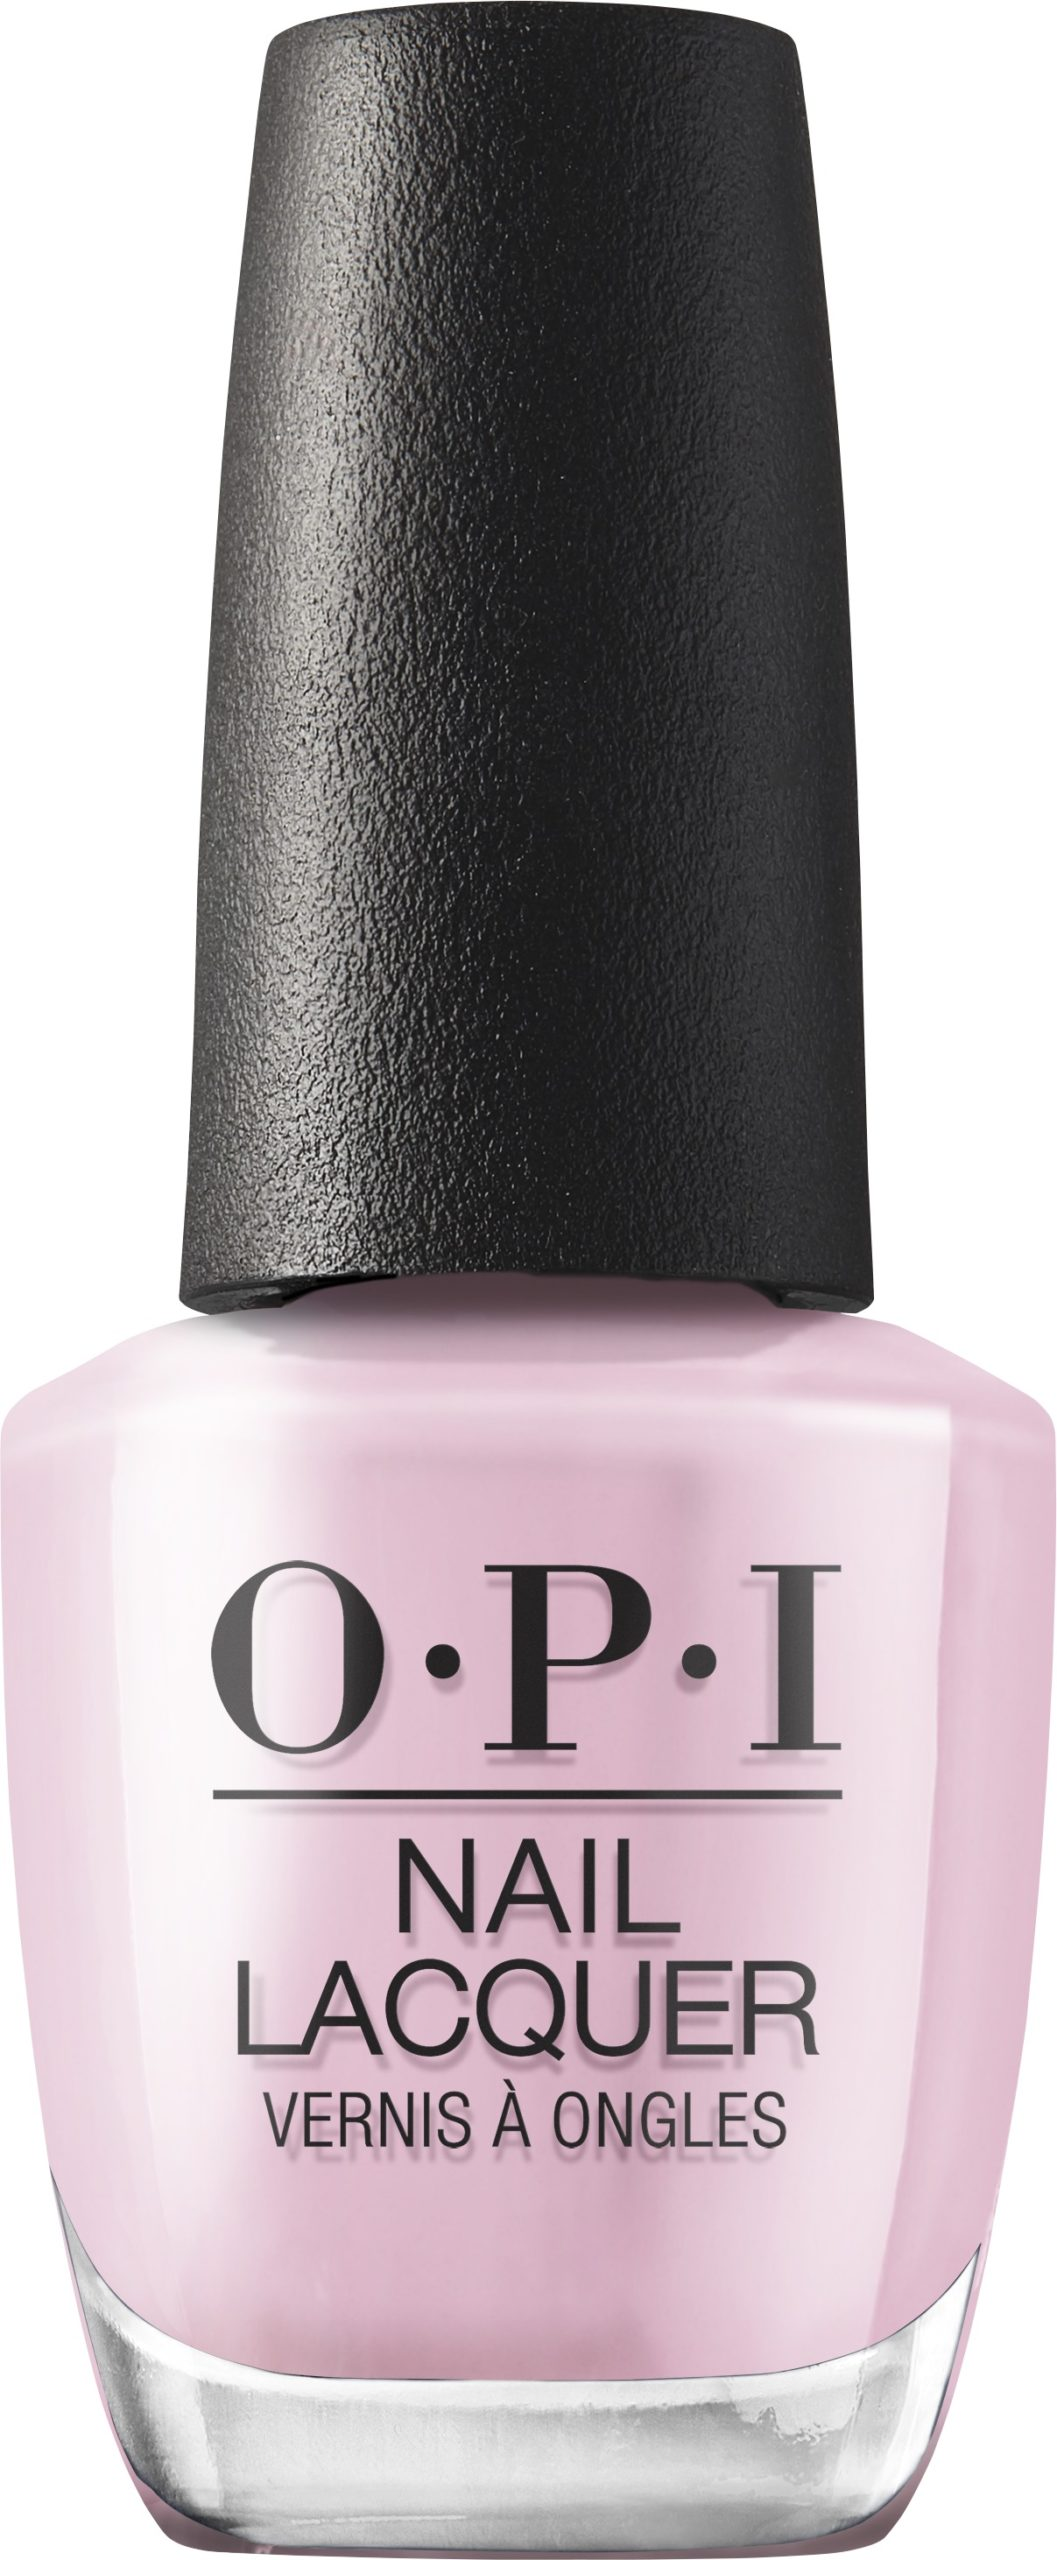 My Celebrity Life – OPI Hollywood Vibe